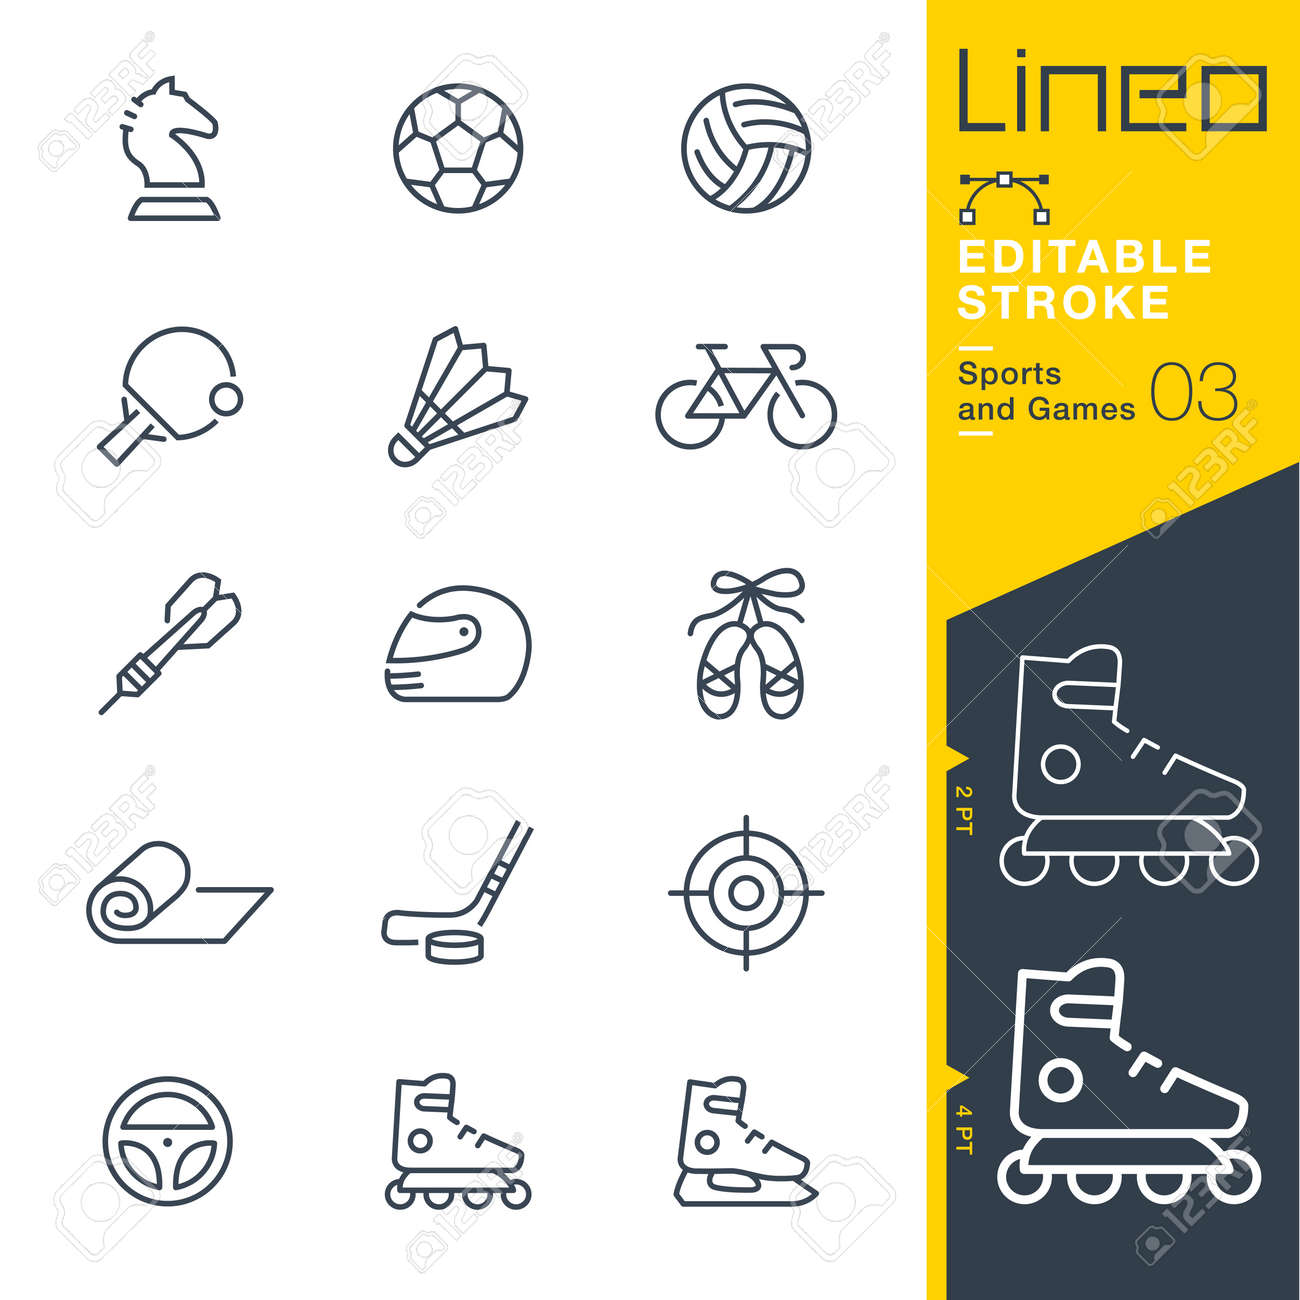 Lineo Editable Stroke - Sports and Games line icons Vector Icons - Adjust stroke weight - Change to any color - 85641773